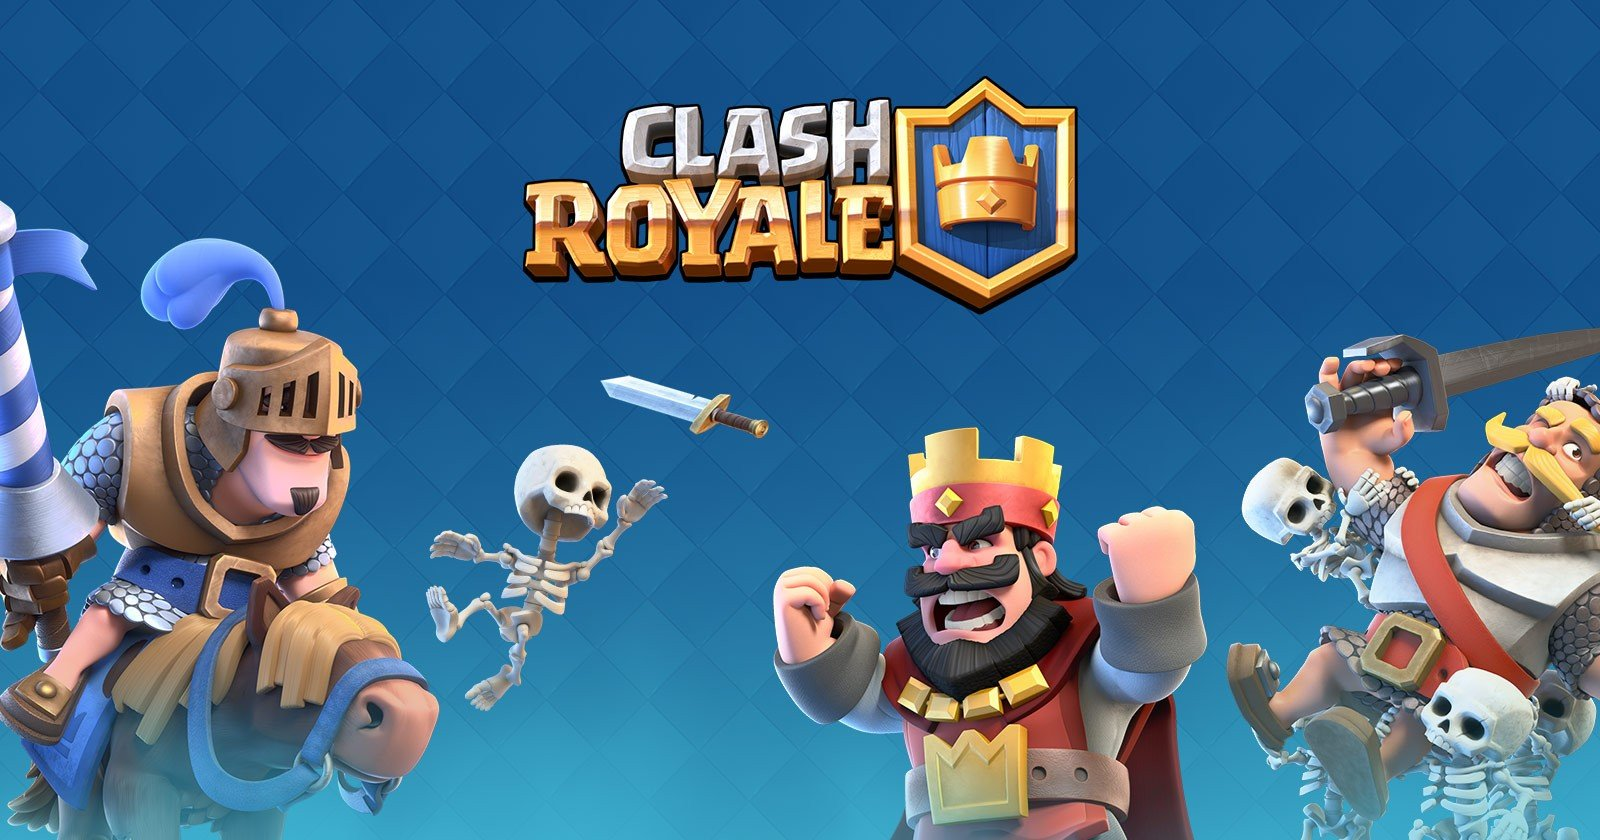 Clash Royale -  My First Impressions 6